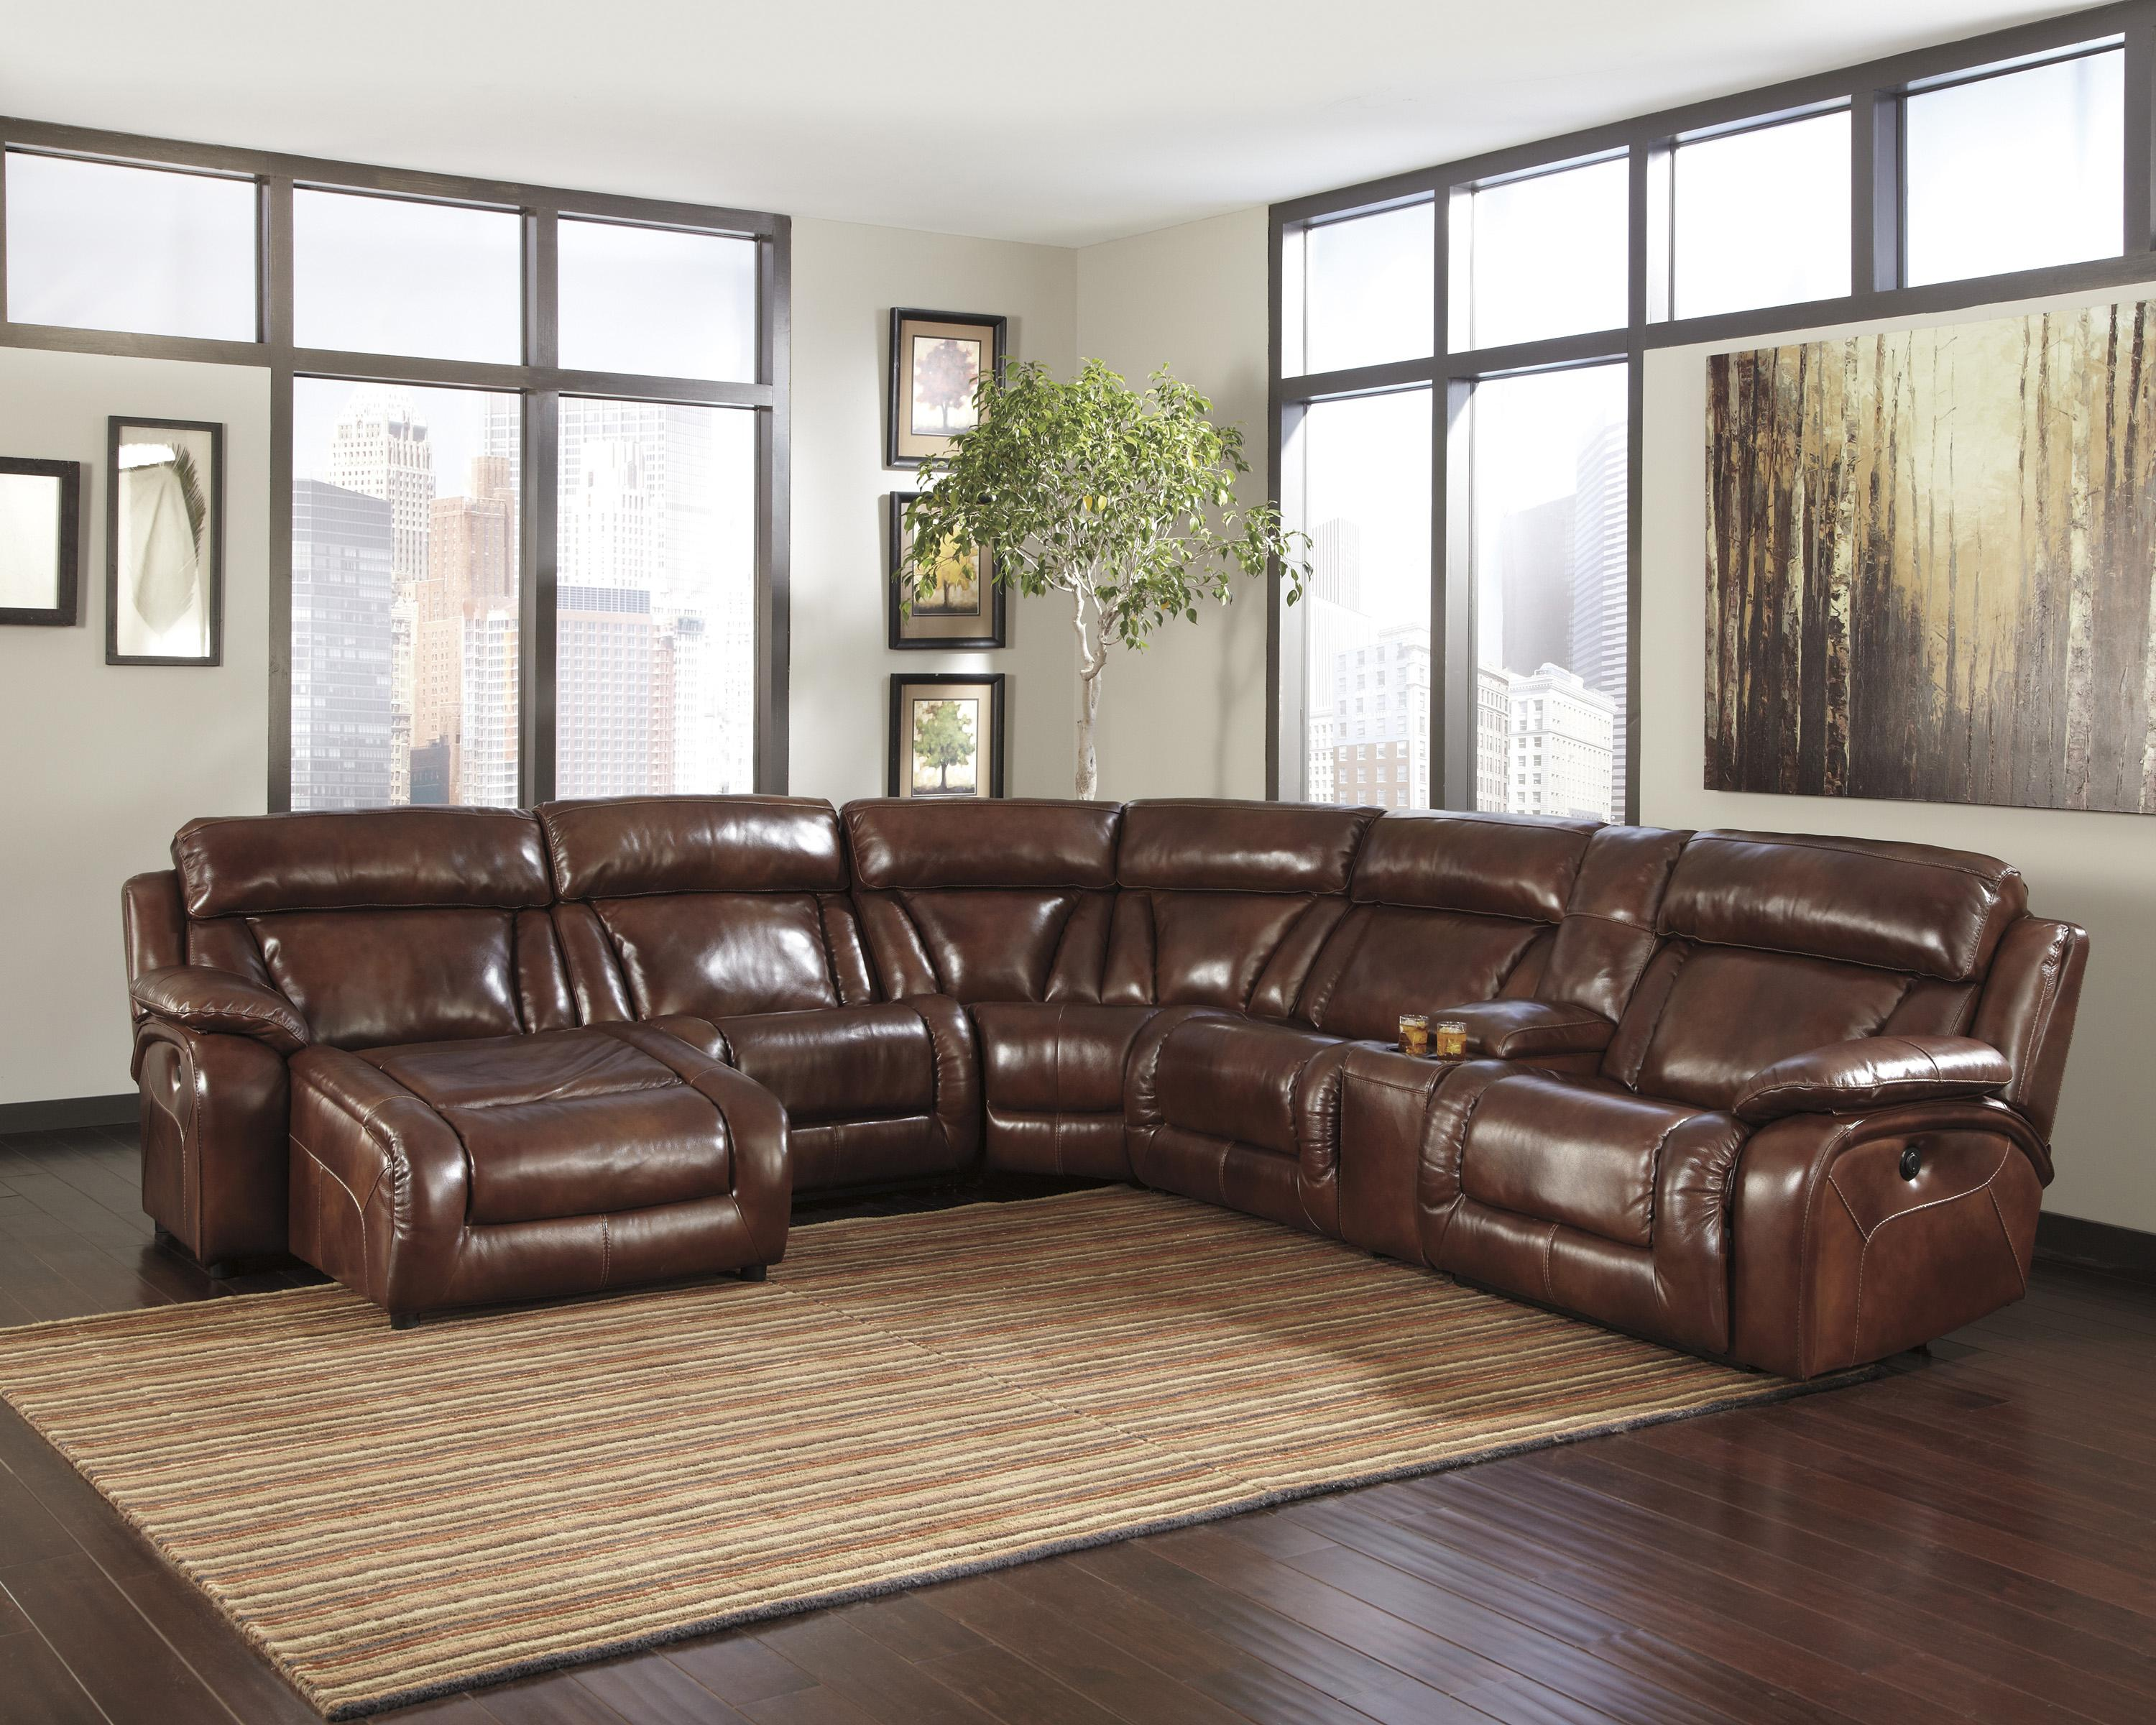 Signature Design by Ashley Elemen Contemporary Reclining Sectional Sofa - Item Number: U9920179+2x19+77+57+62